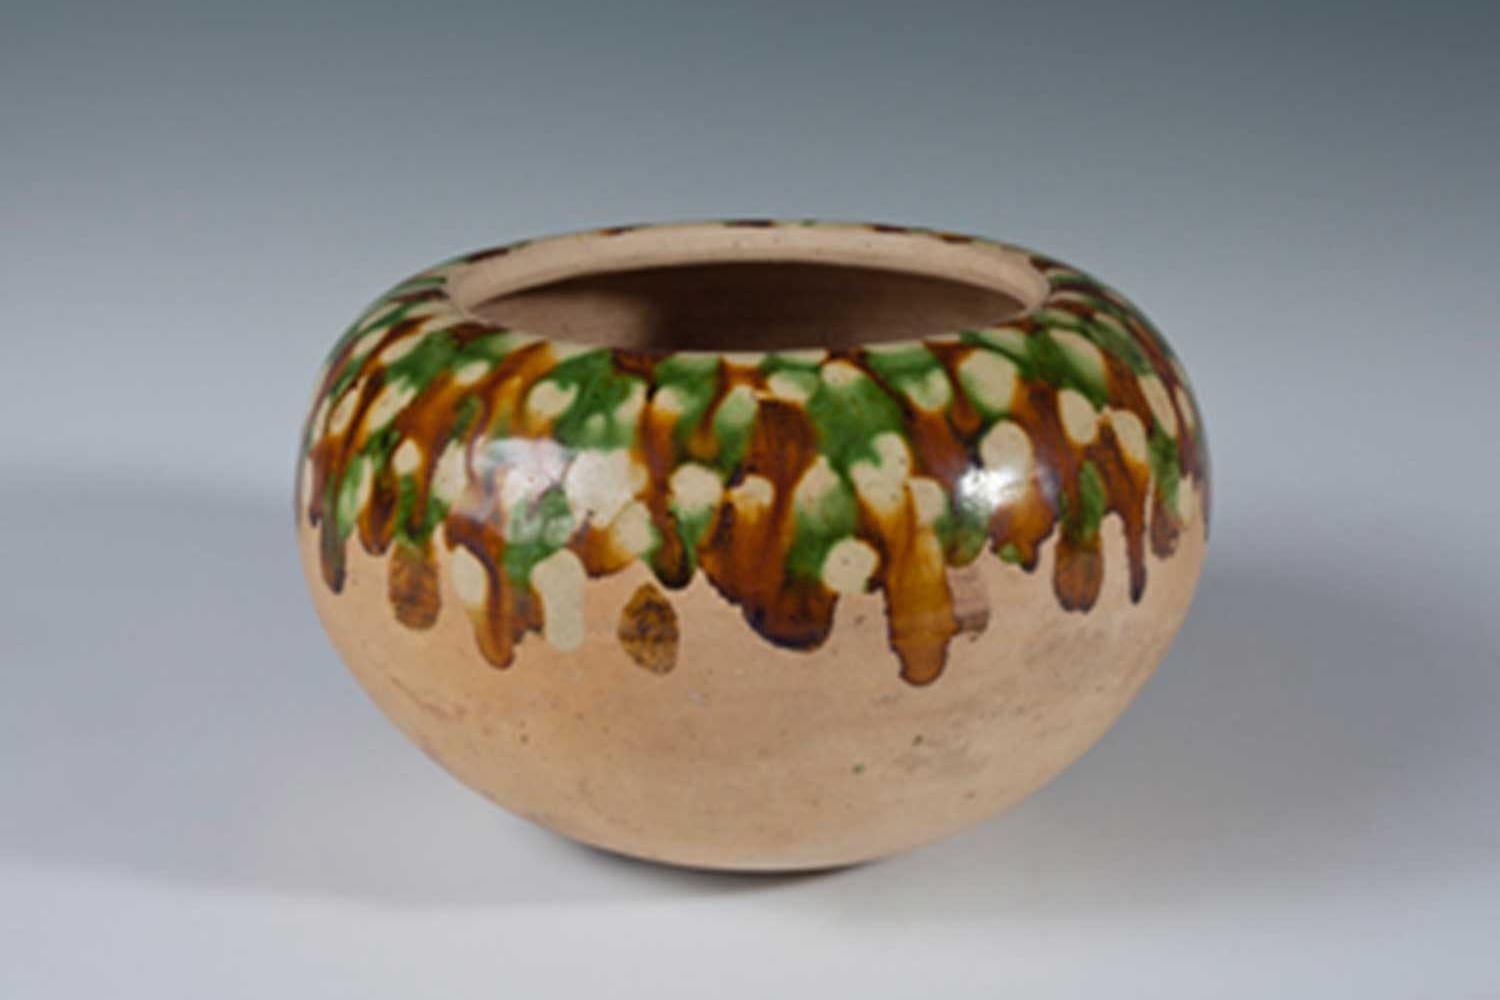 ancient ceramic bowl with brown and green glazing